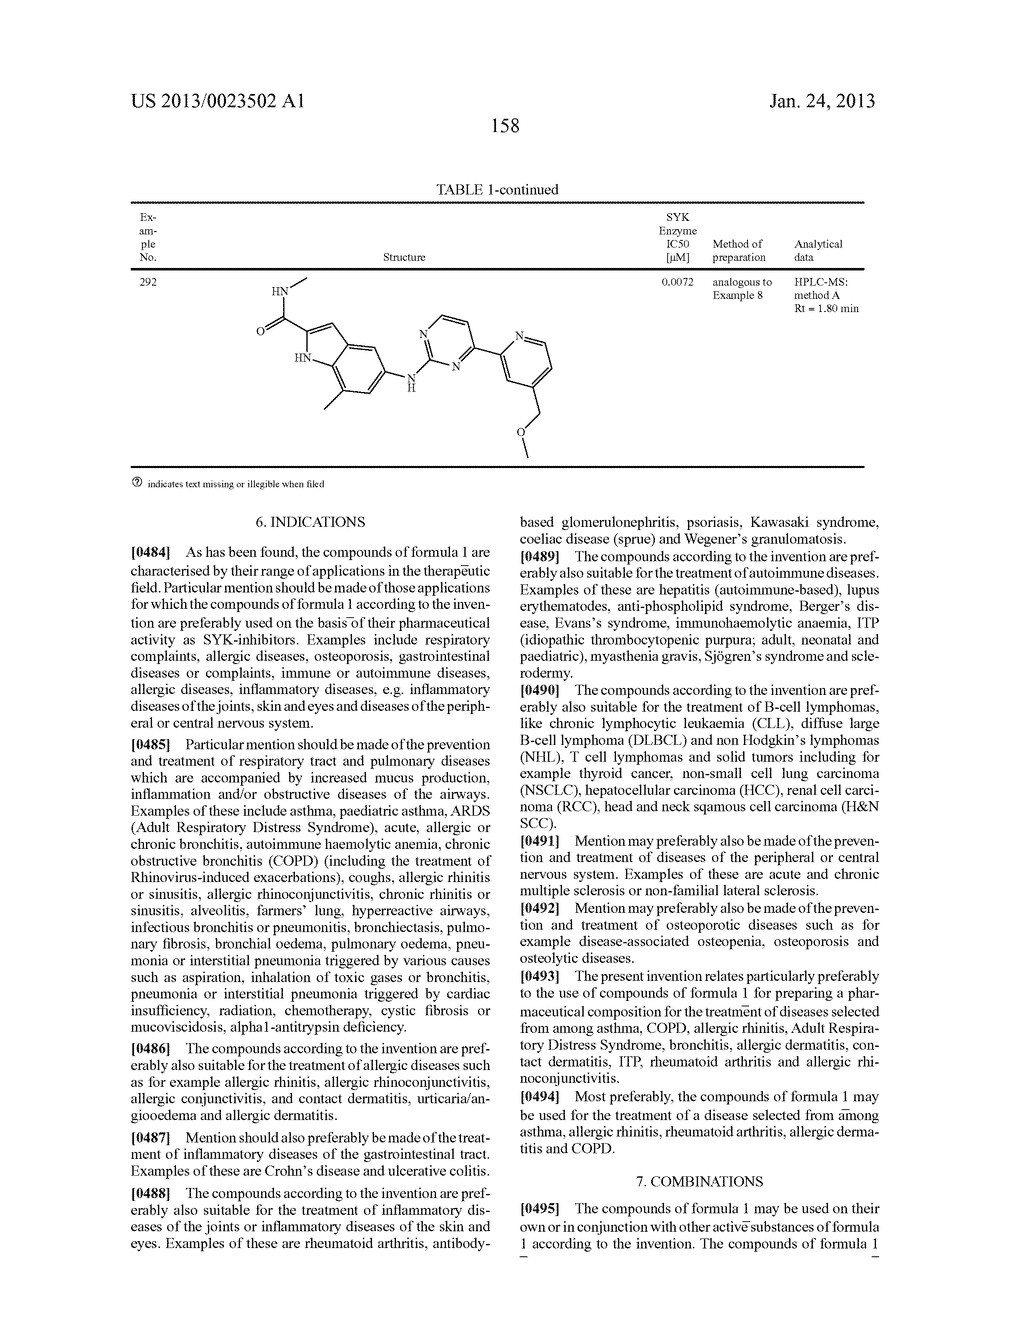 SUBSTITUTED PYRIDINYL-PYRIMIDINES AND THEIR USE AS MEDICAMENTS - diagram, schematic, and image 159